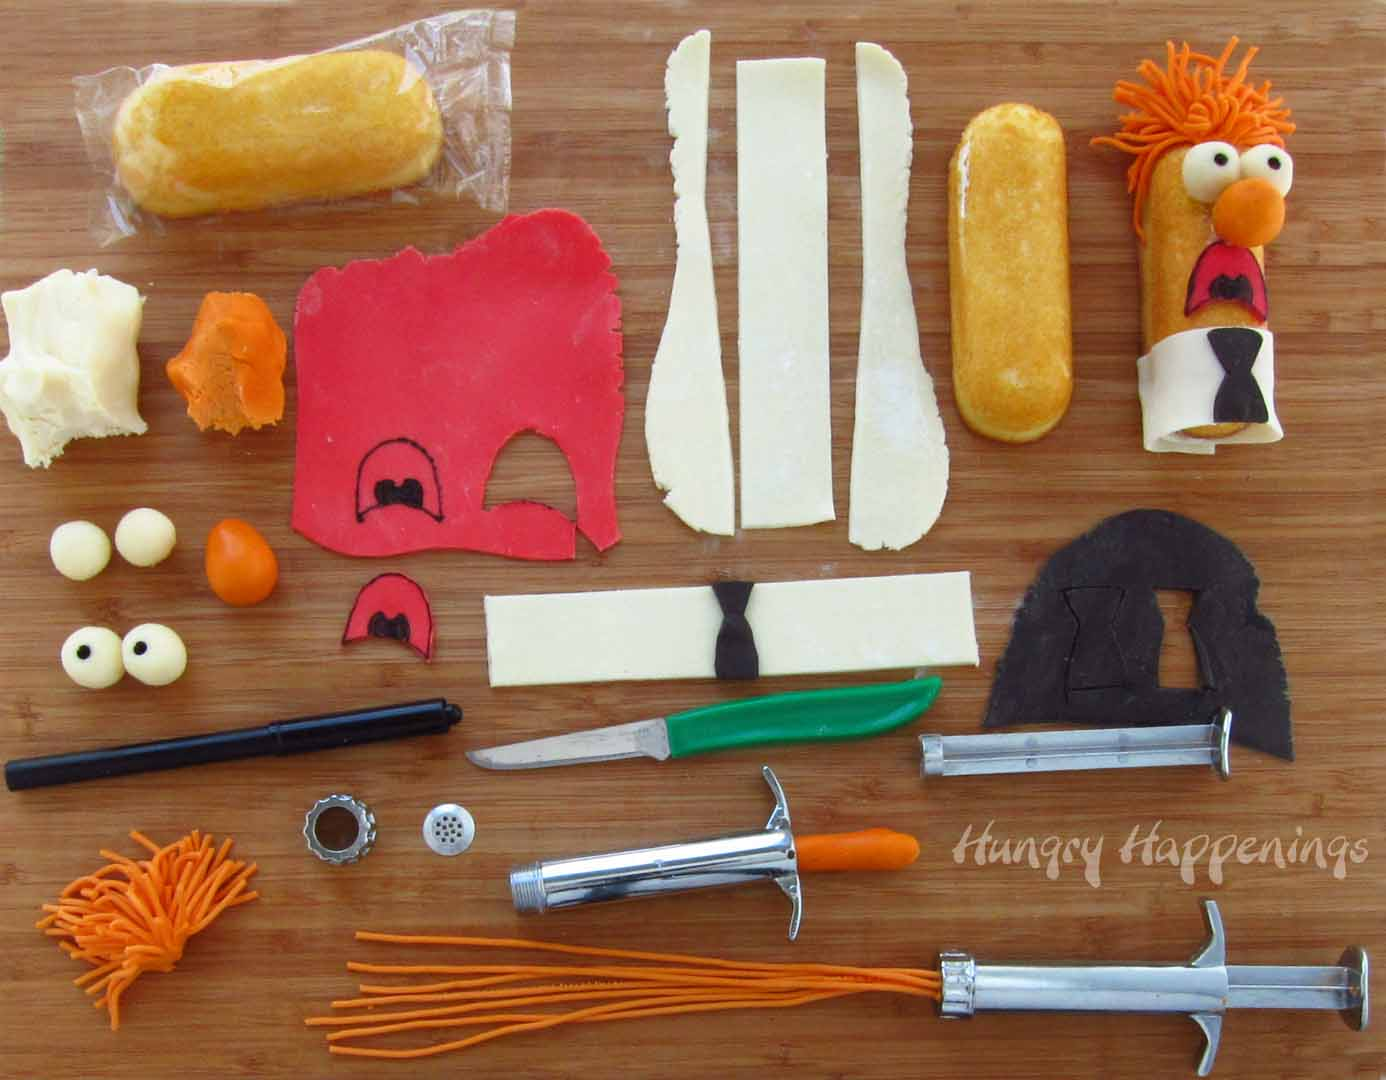 How to turn a Twinkie into Beaker - Muppets Themed Party